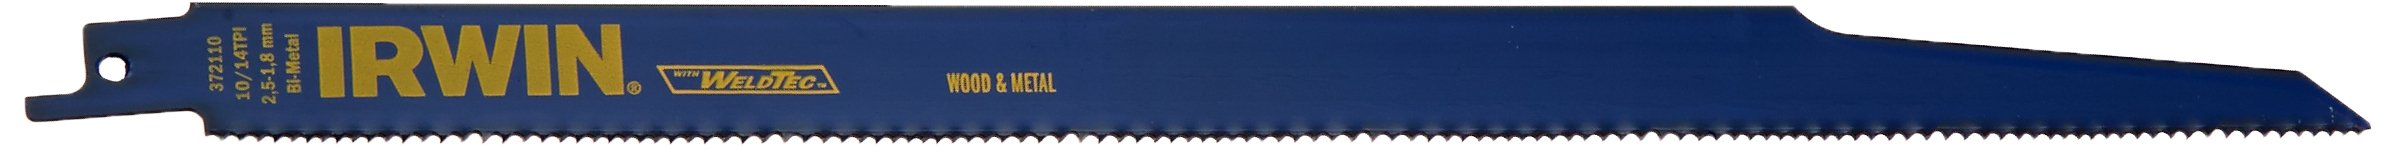 IRWIN Tools Metal and Wood Cutting Reciprocating Saw Blade, 12-Inch, 10/14 TPI (372110)